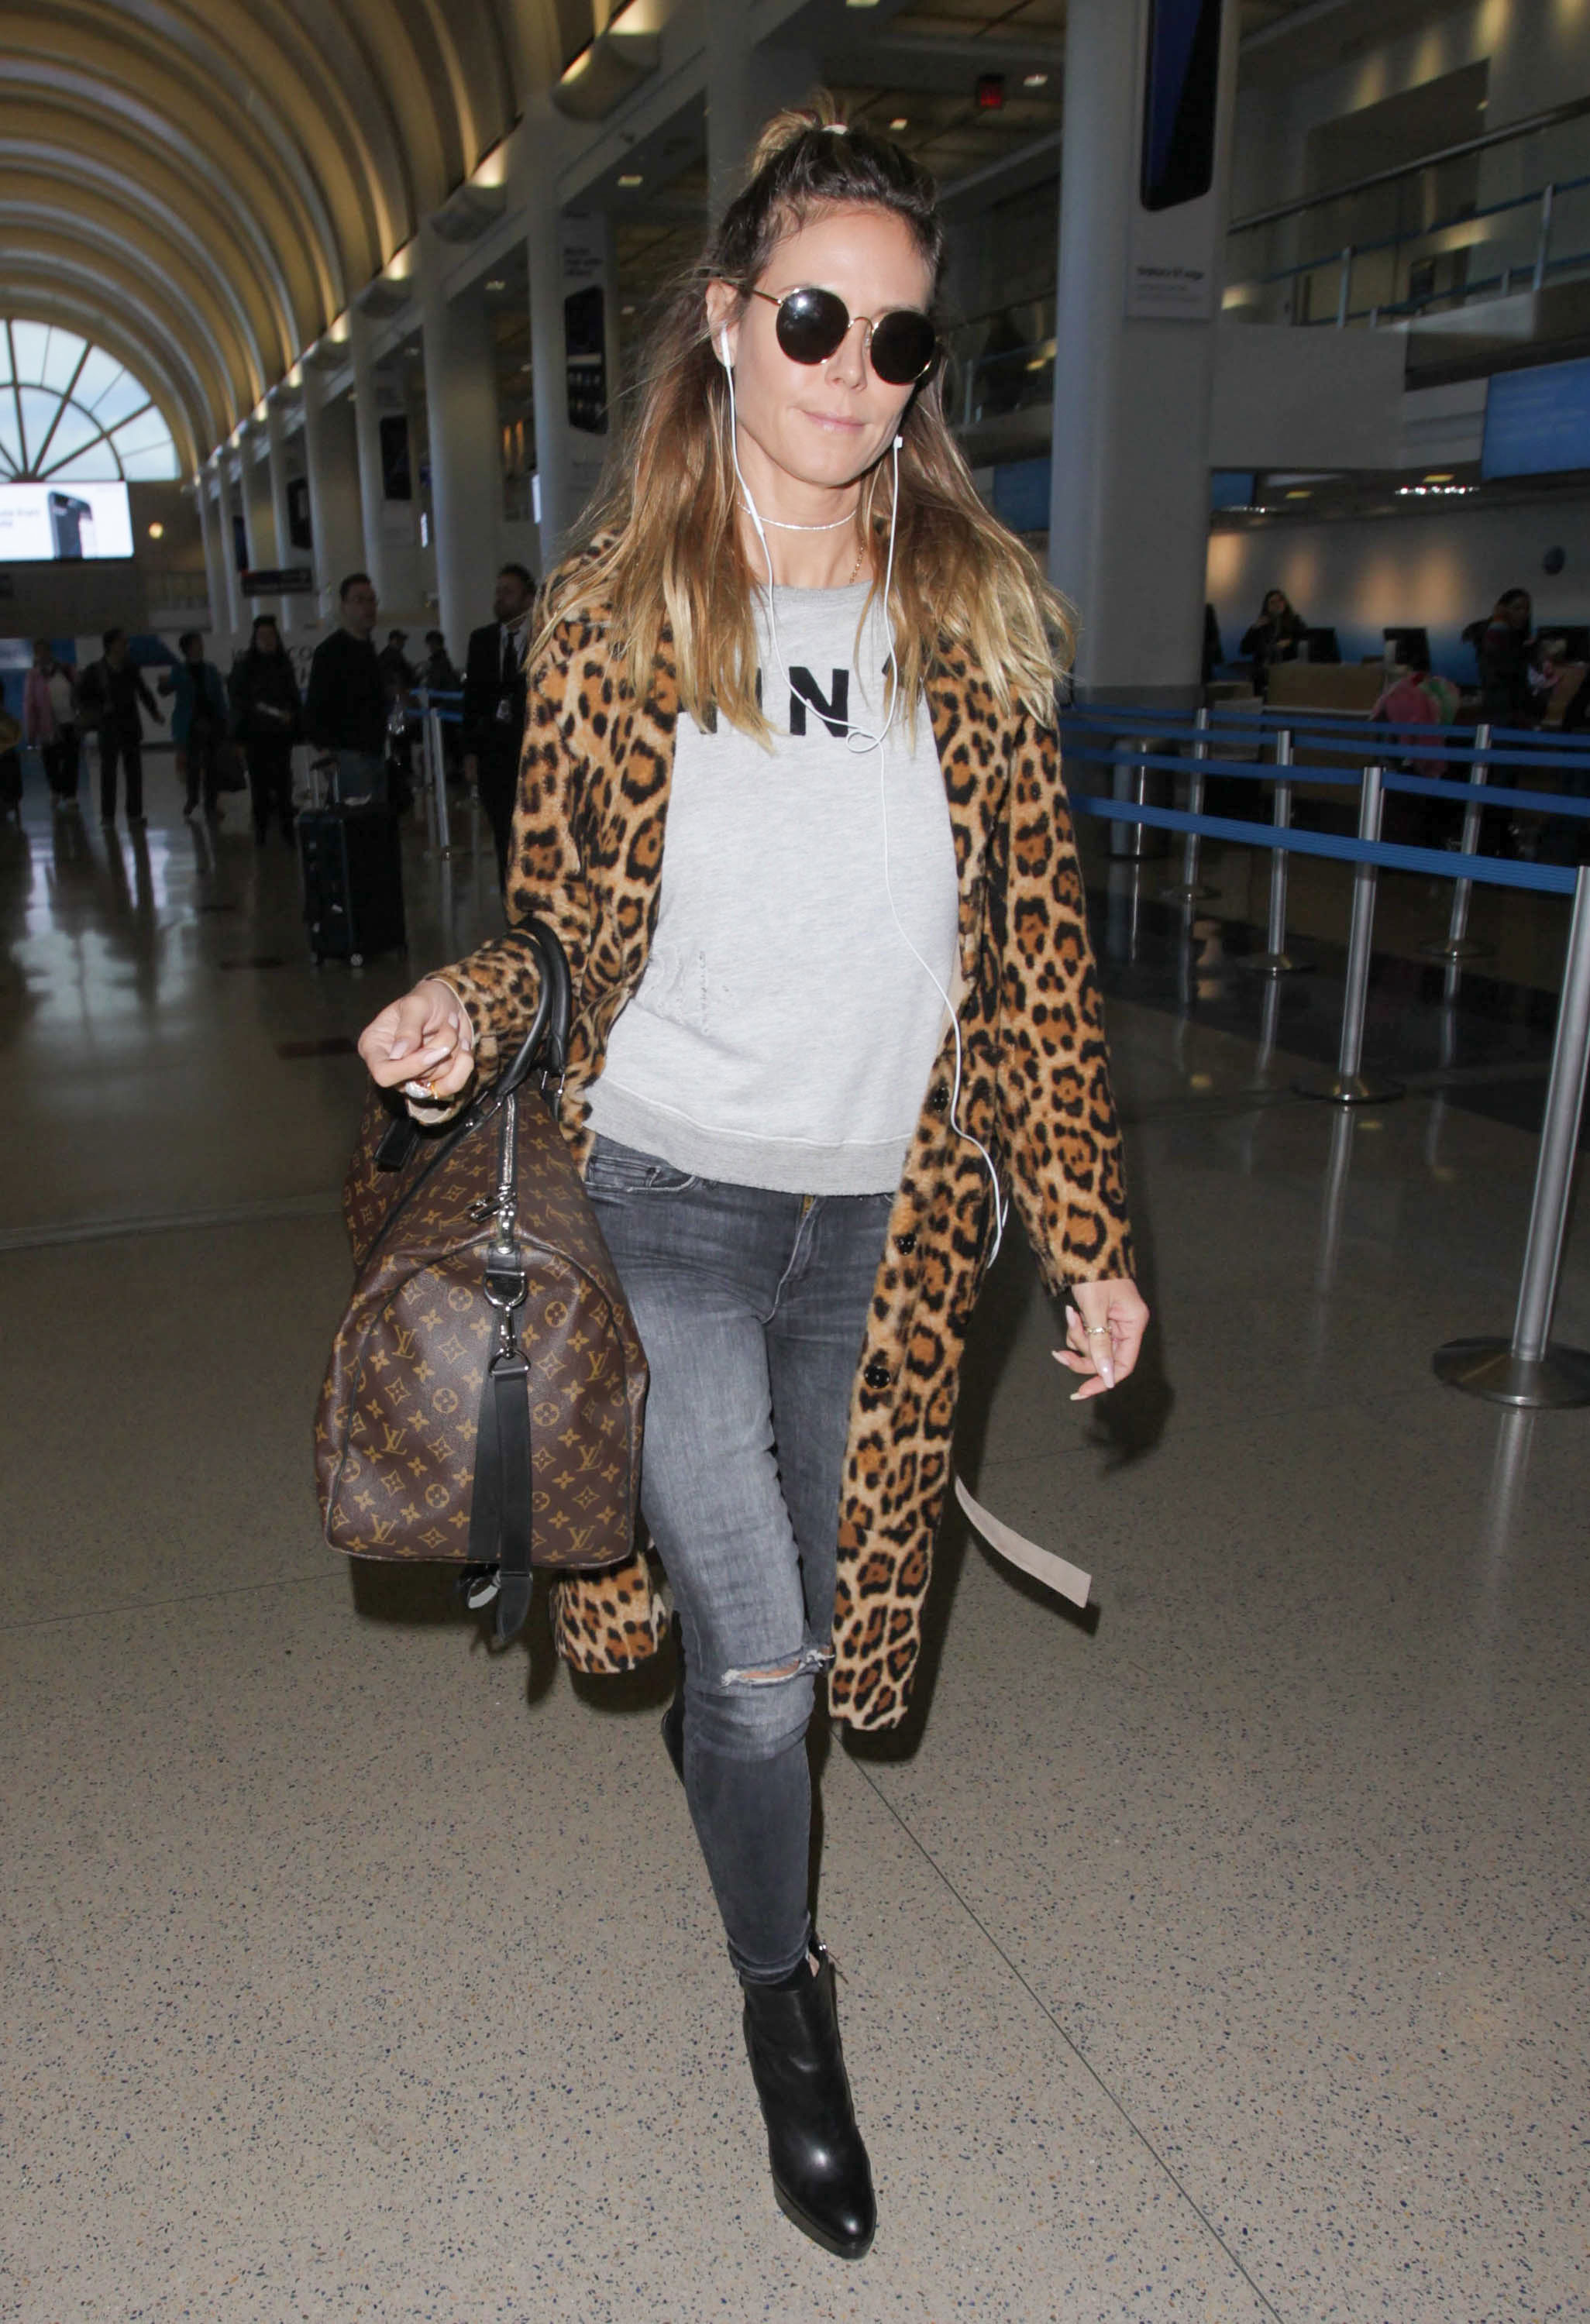 Heidi Klum's leopard coat airport style is on point.